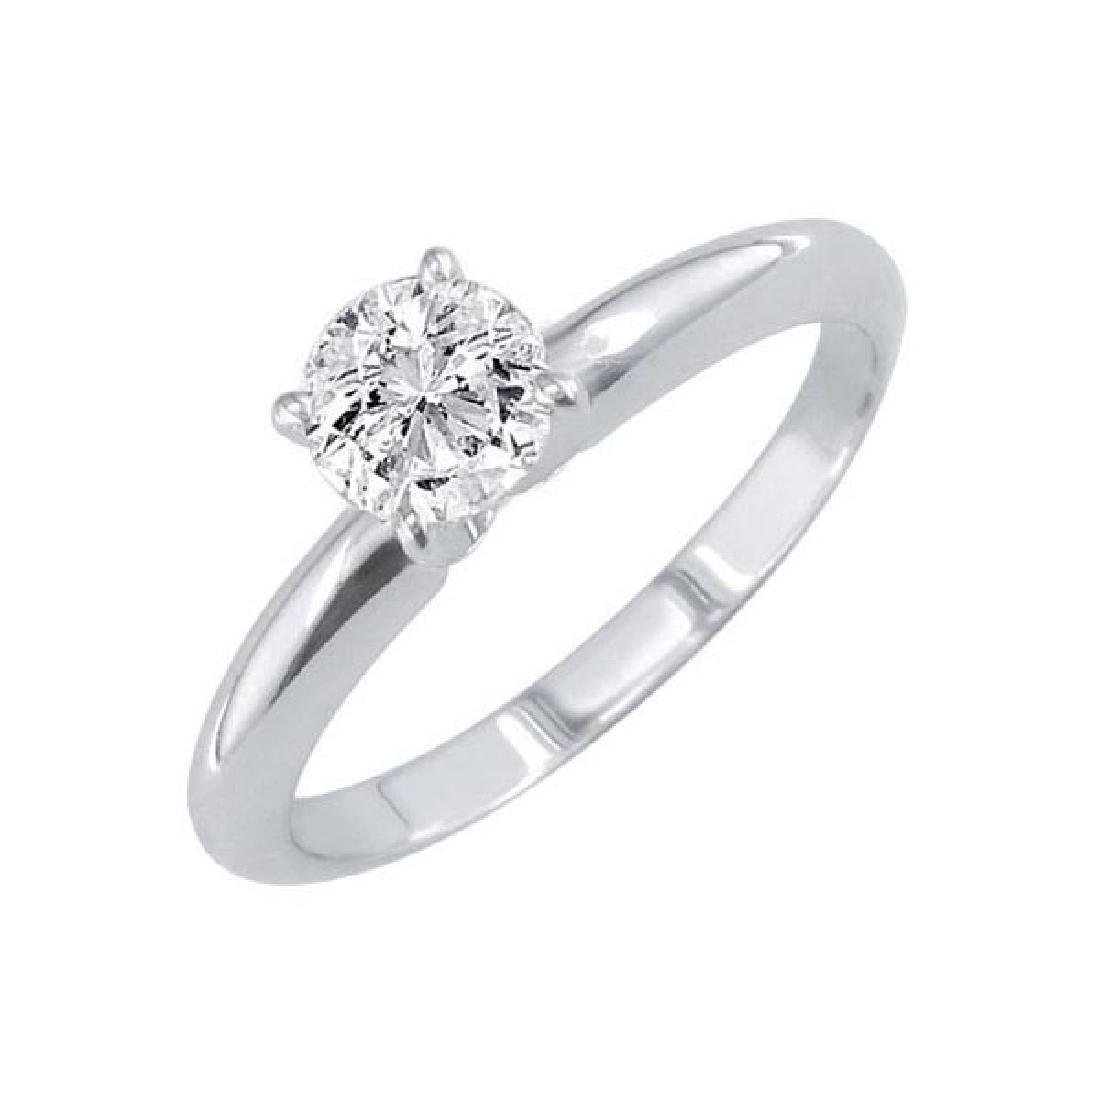 Certified 1.09 CTW Round Diamond Solitaire 14k Ring J/I